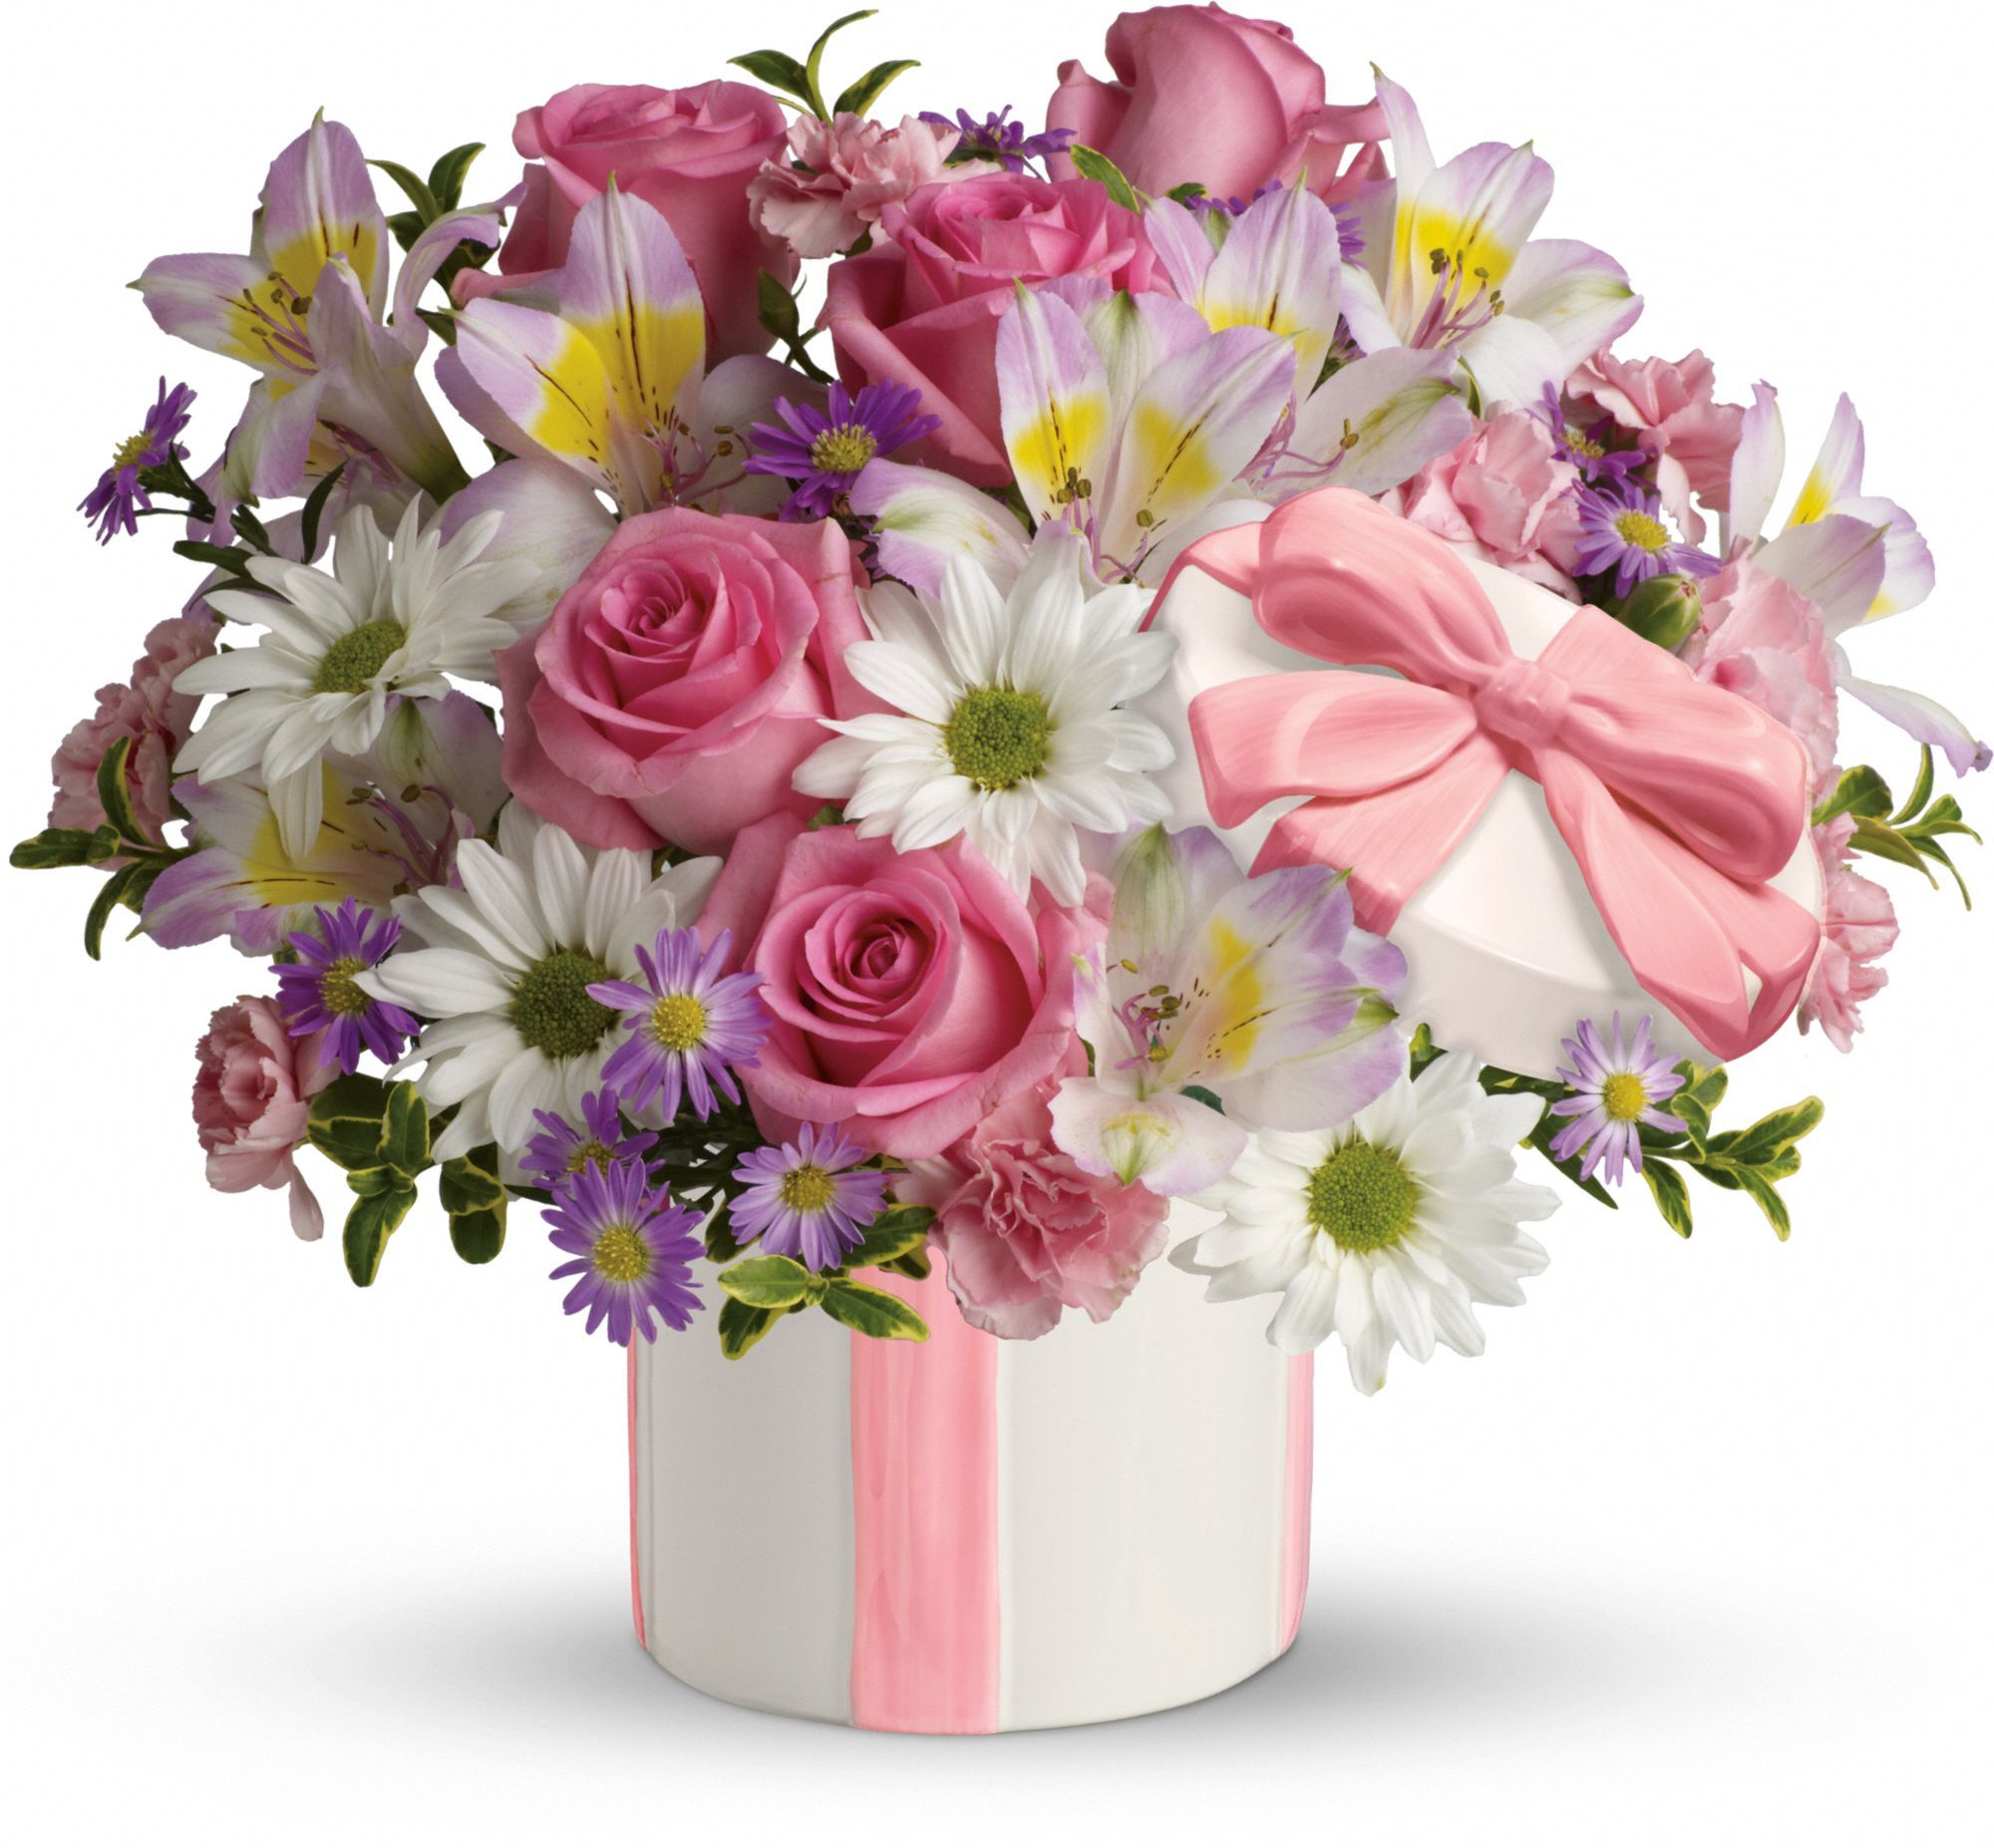 Teleflora's Spring in Bloom Bouquet Flowers bouquet gift